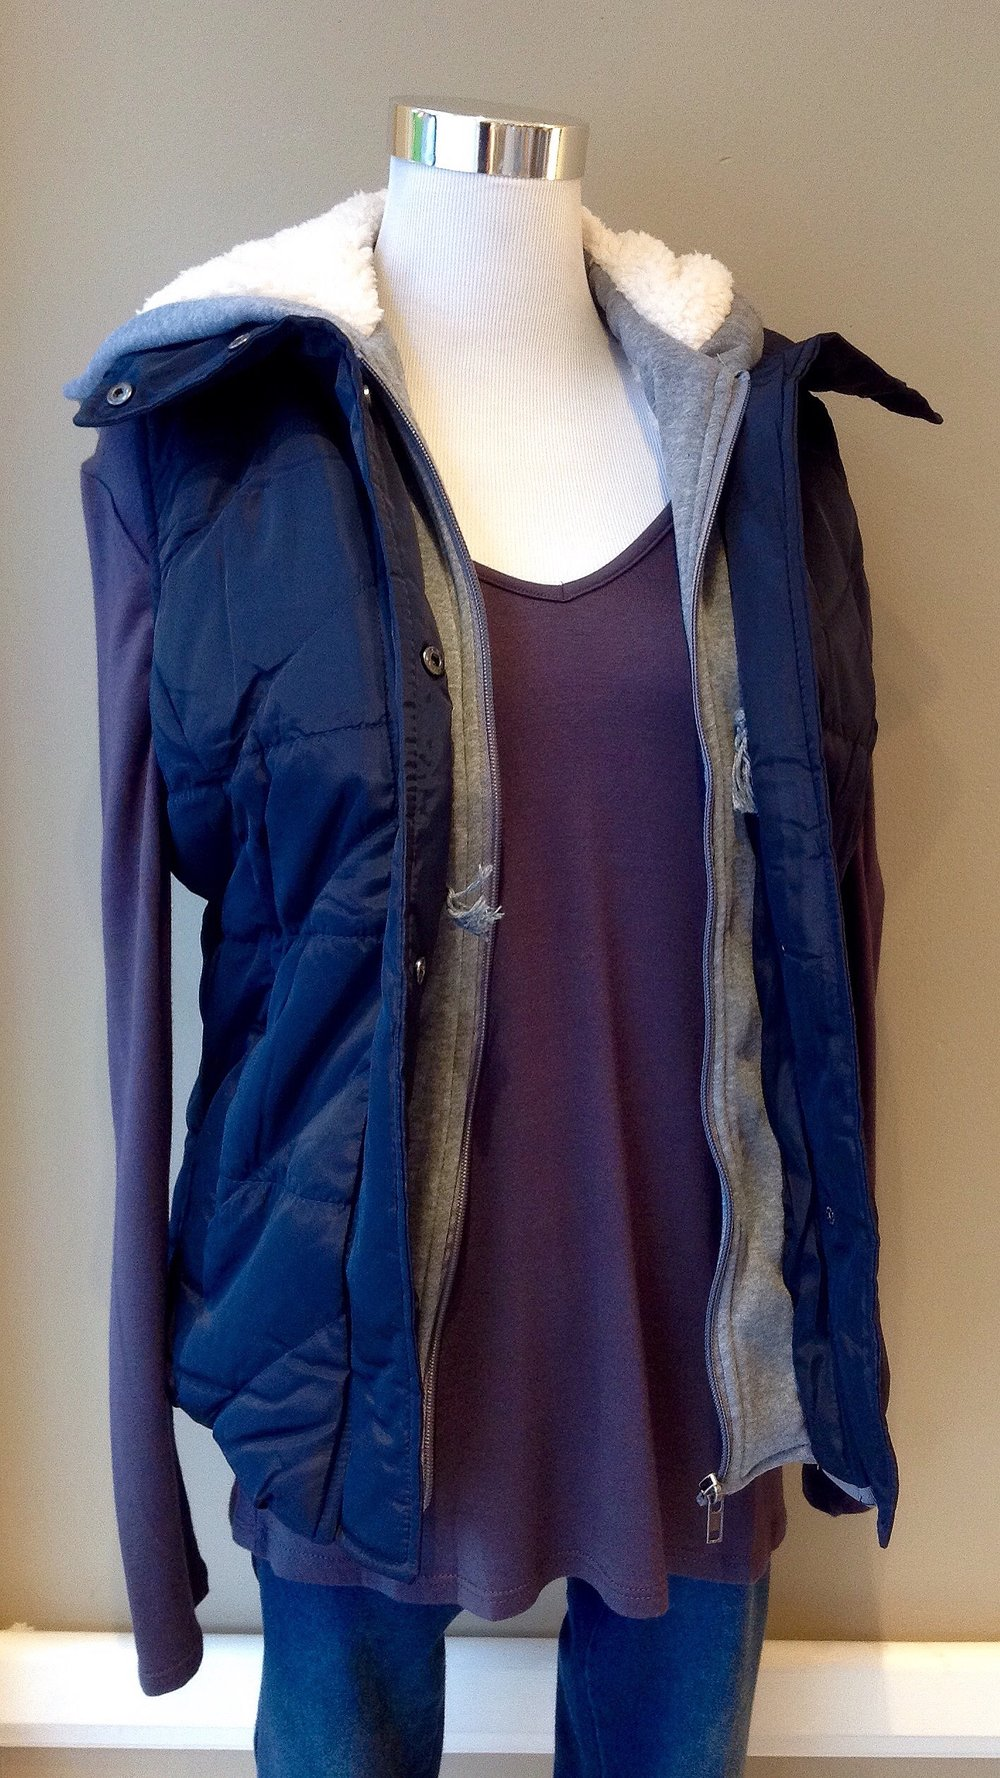 Zip and snap front puffer vest with shearling interior, $48